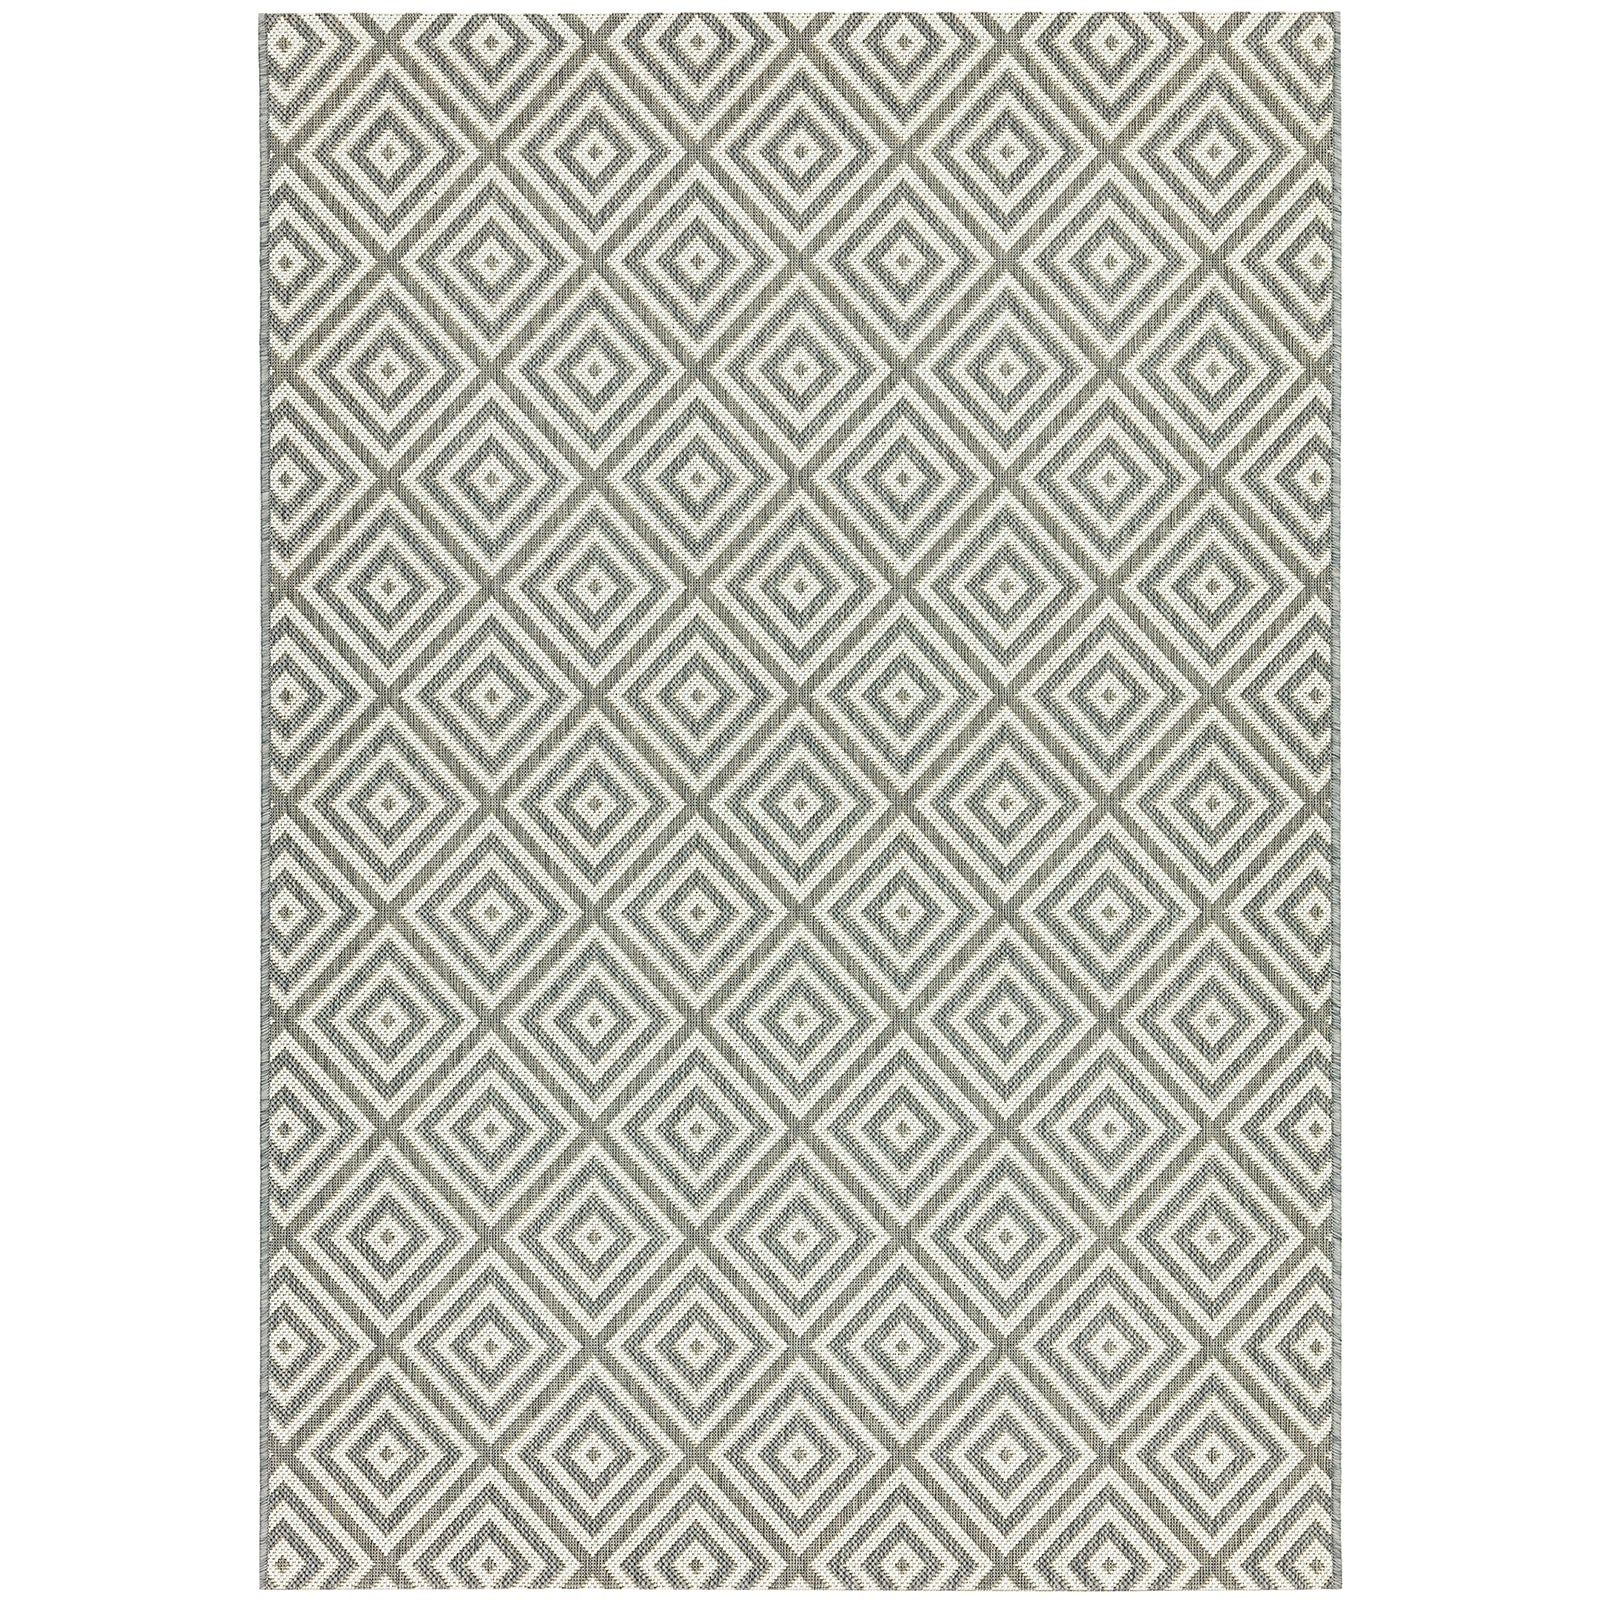 Patio Jewel Outdoor Rug